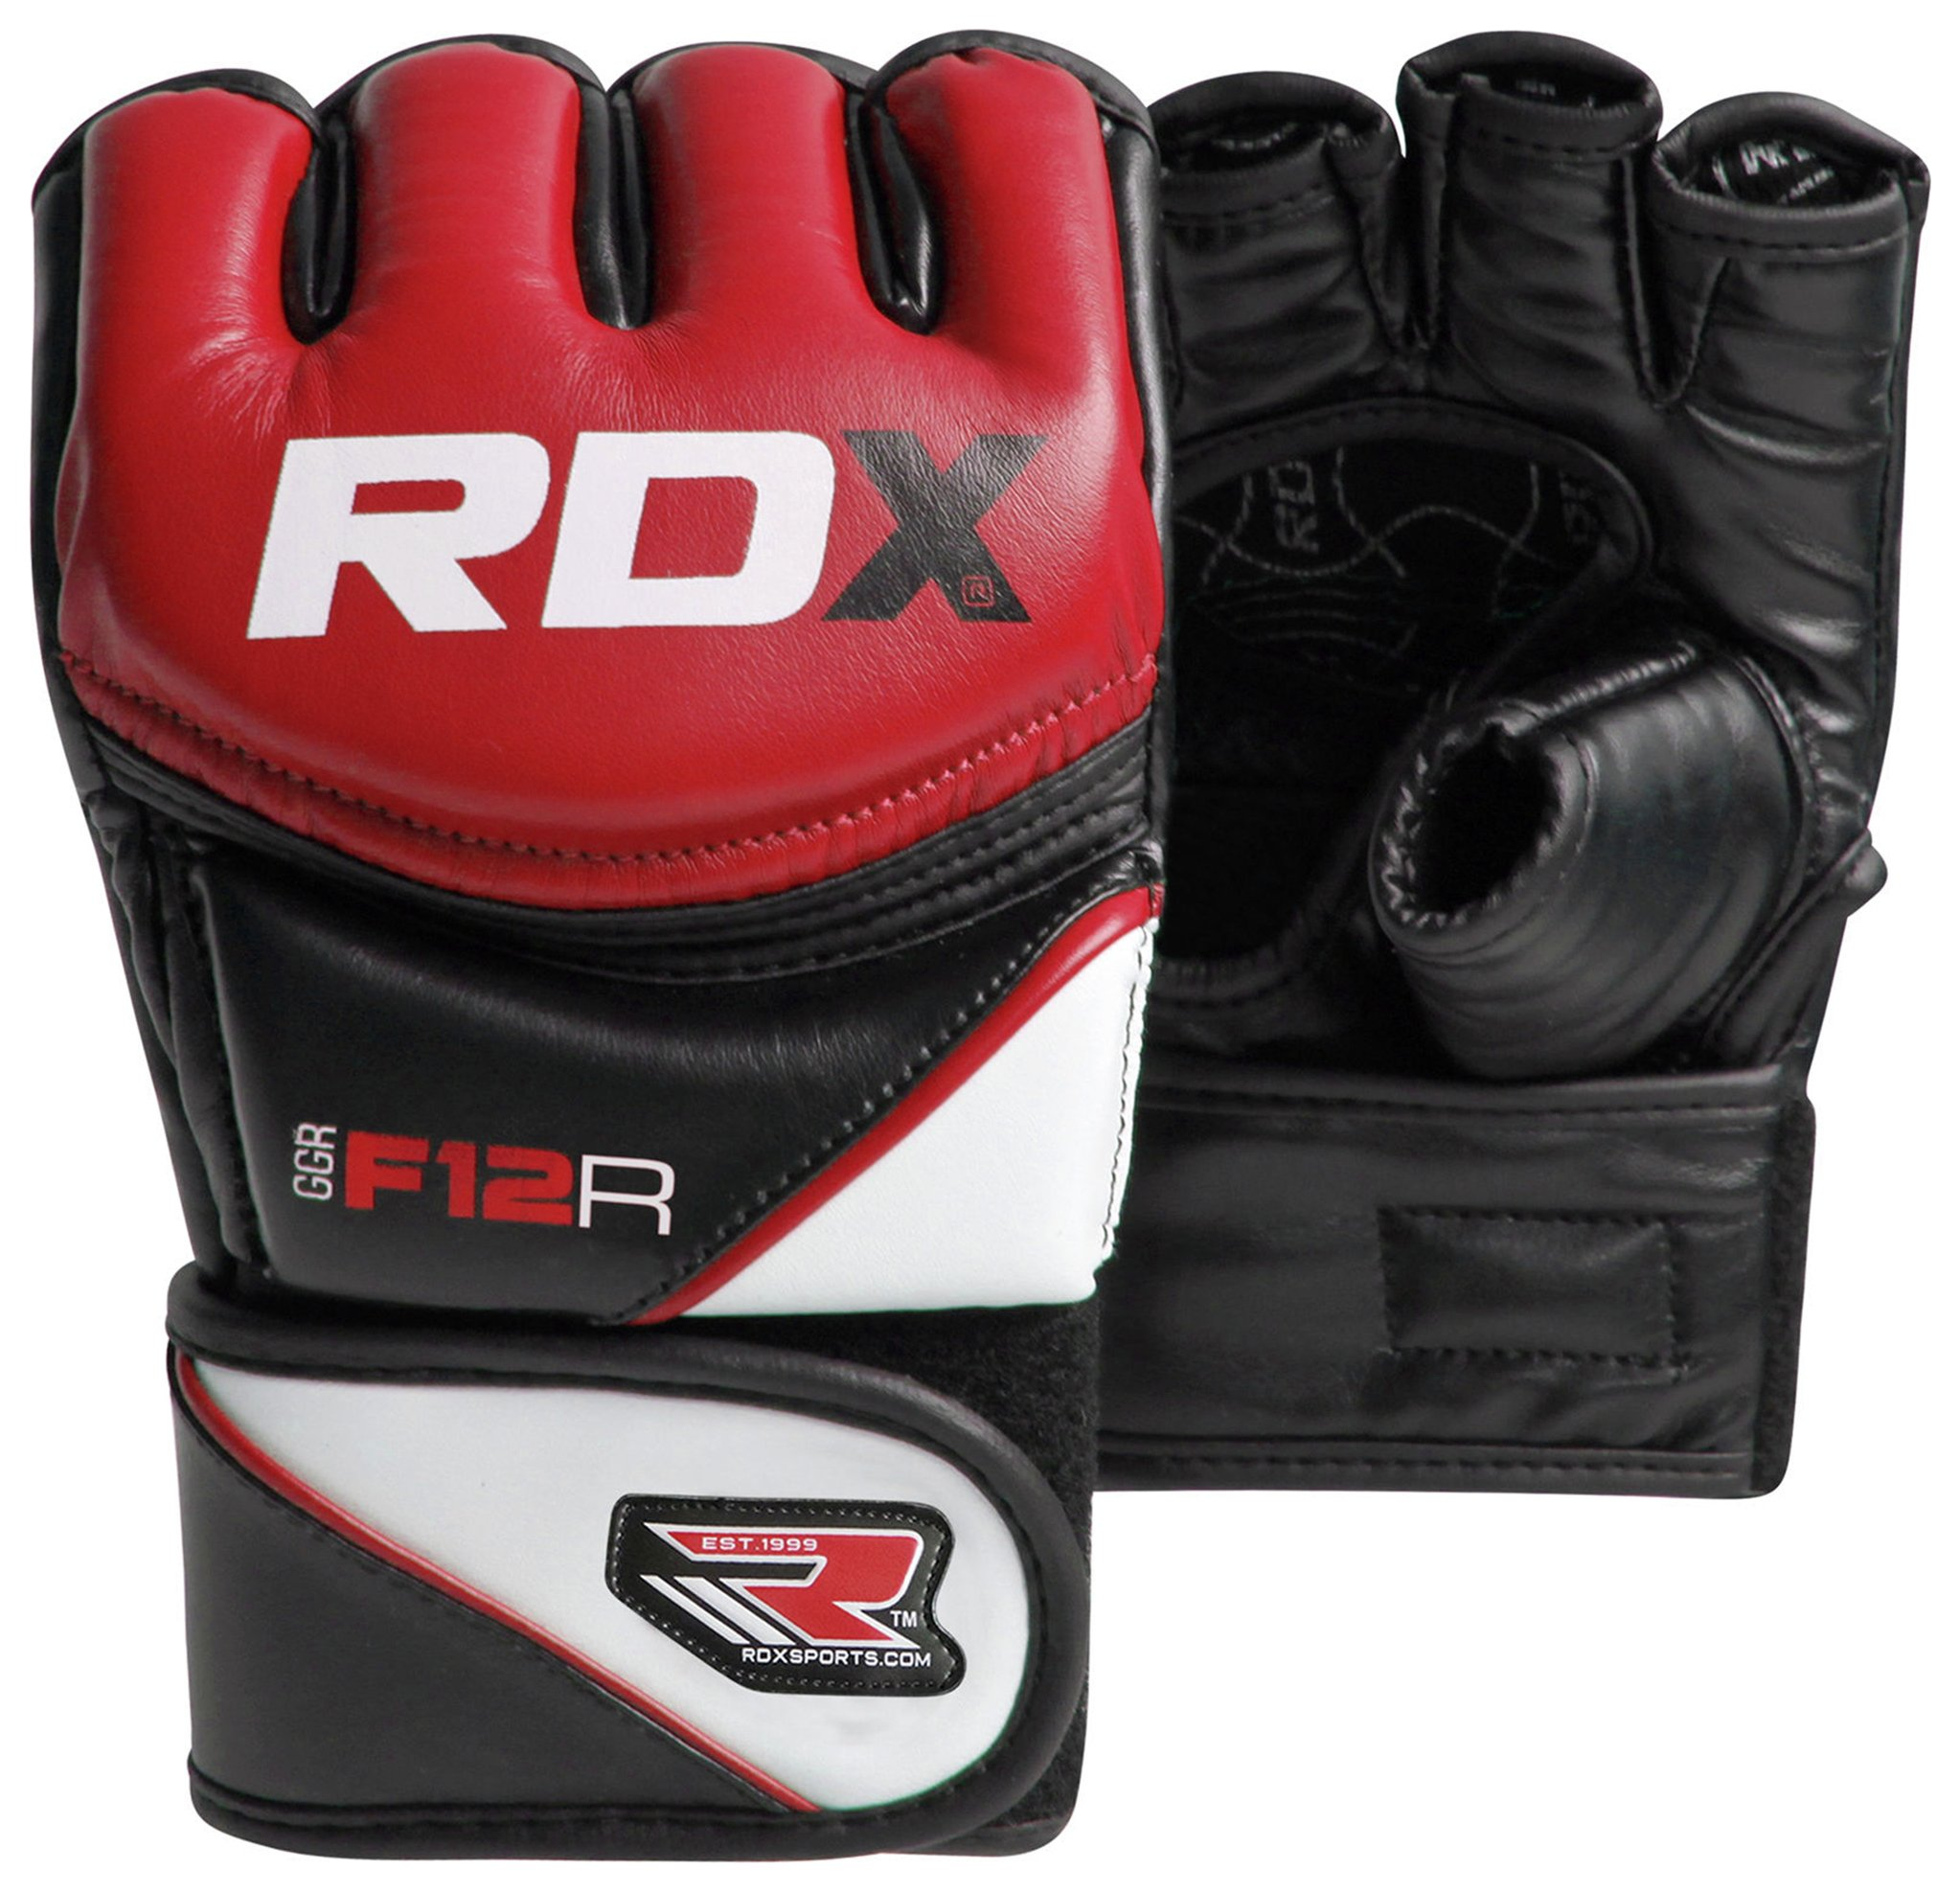 RDX - Synthetic Leather MMA Gloves Red - Large/Extra Large lowest price